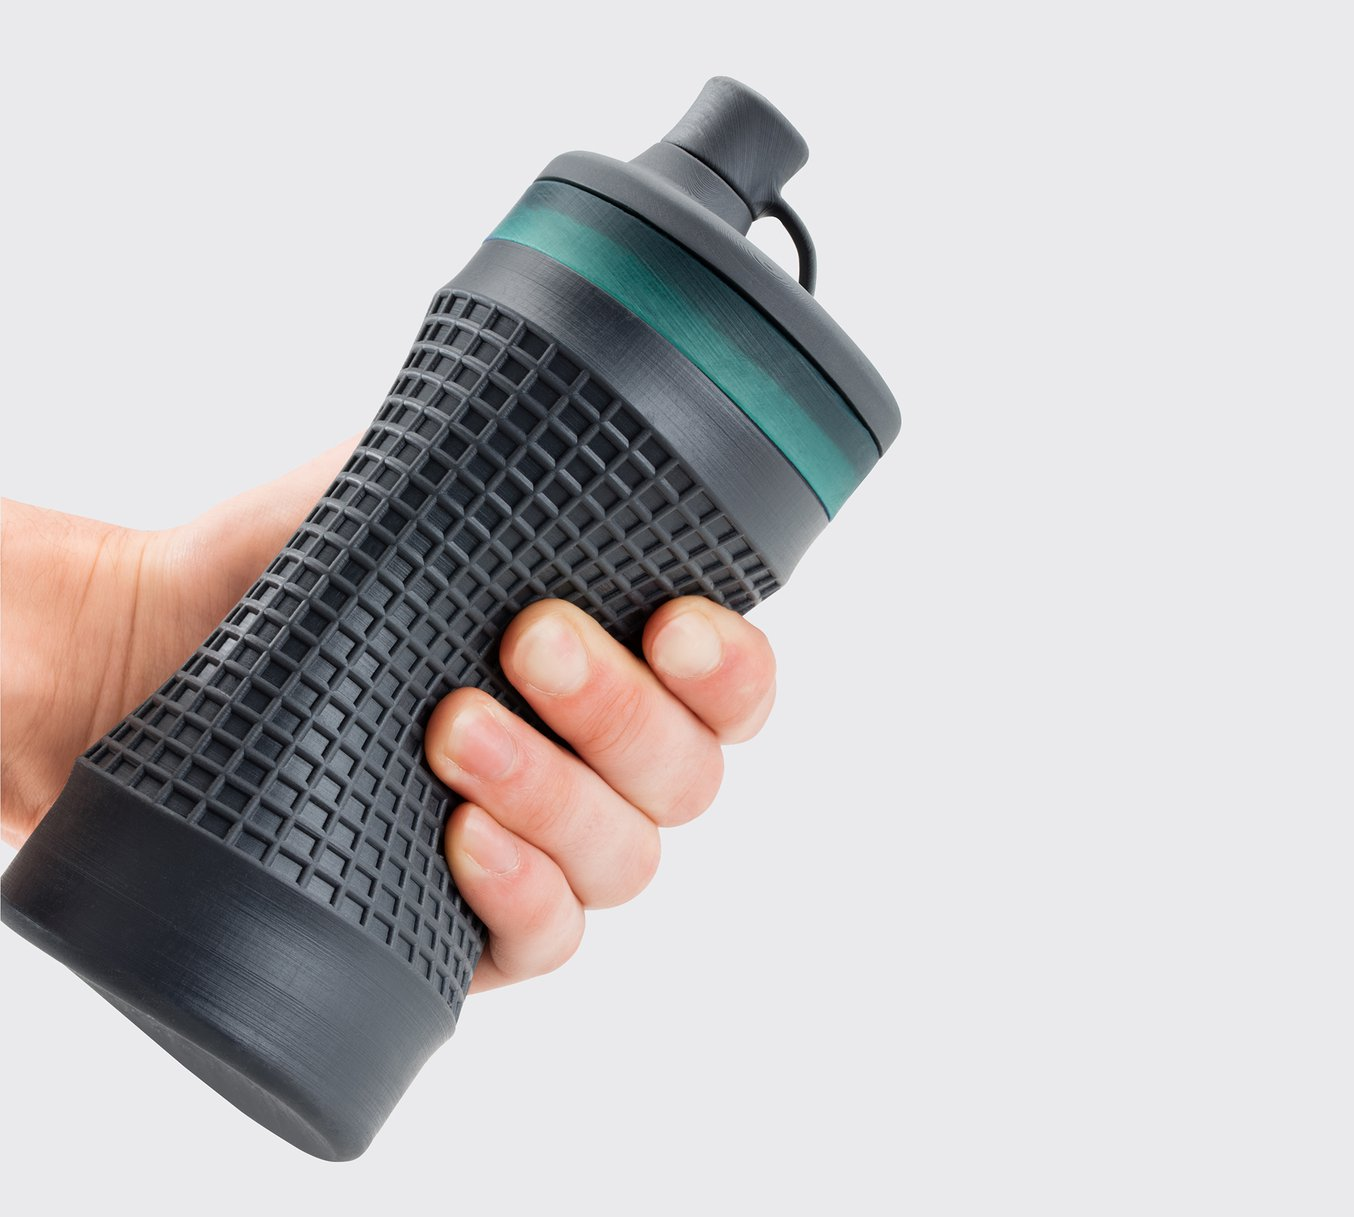 A water bottle prototype 3D printed in Flexible Resin.